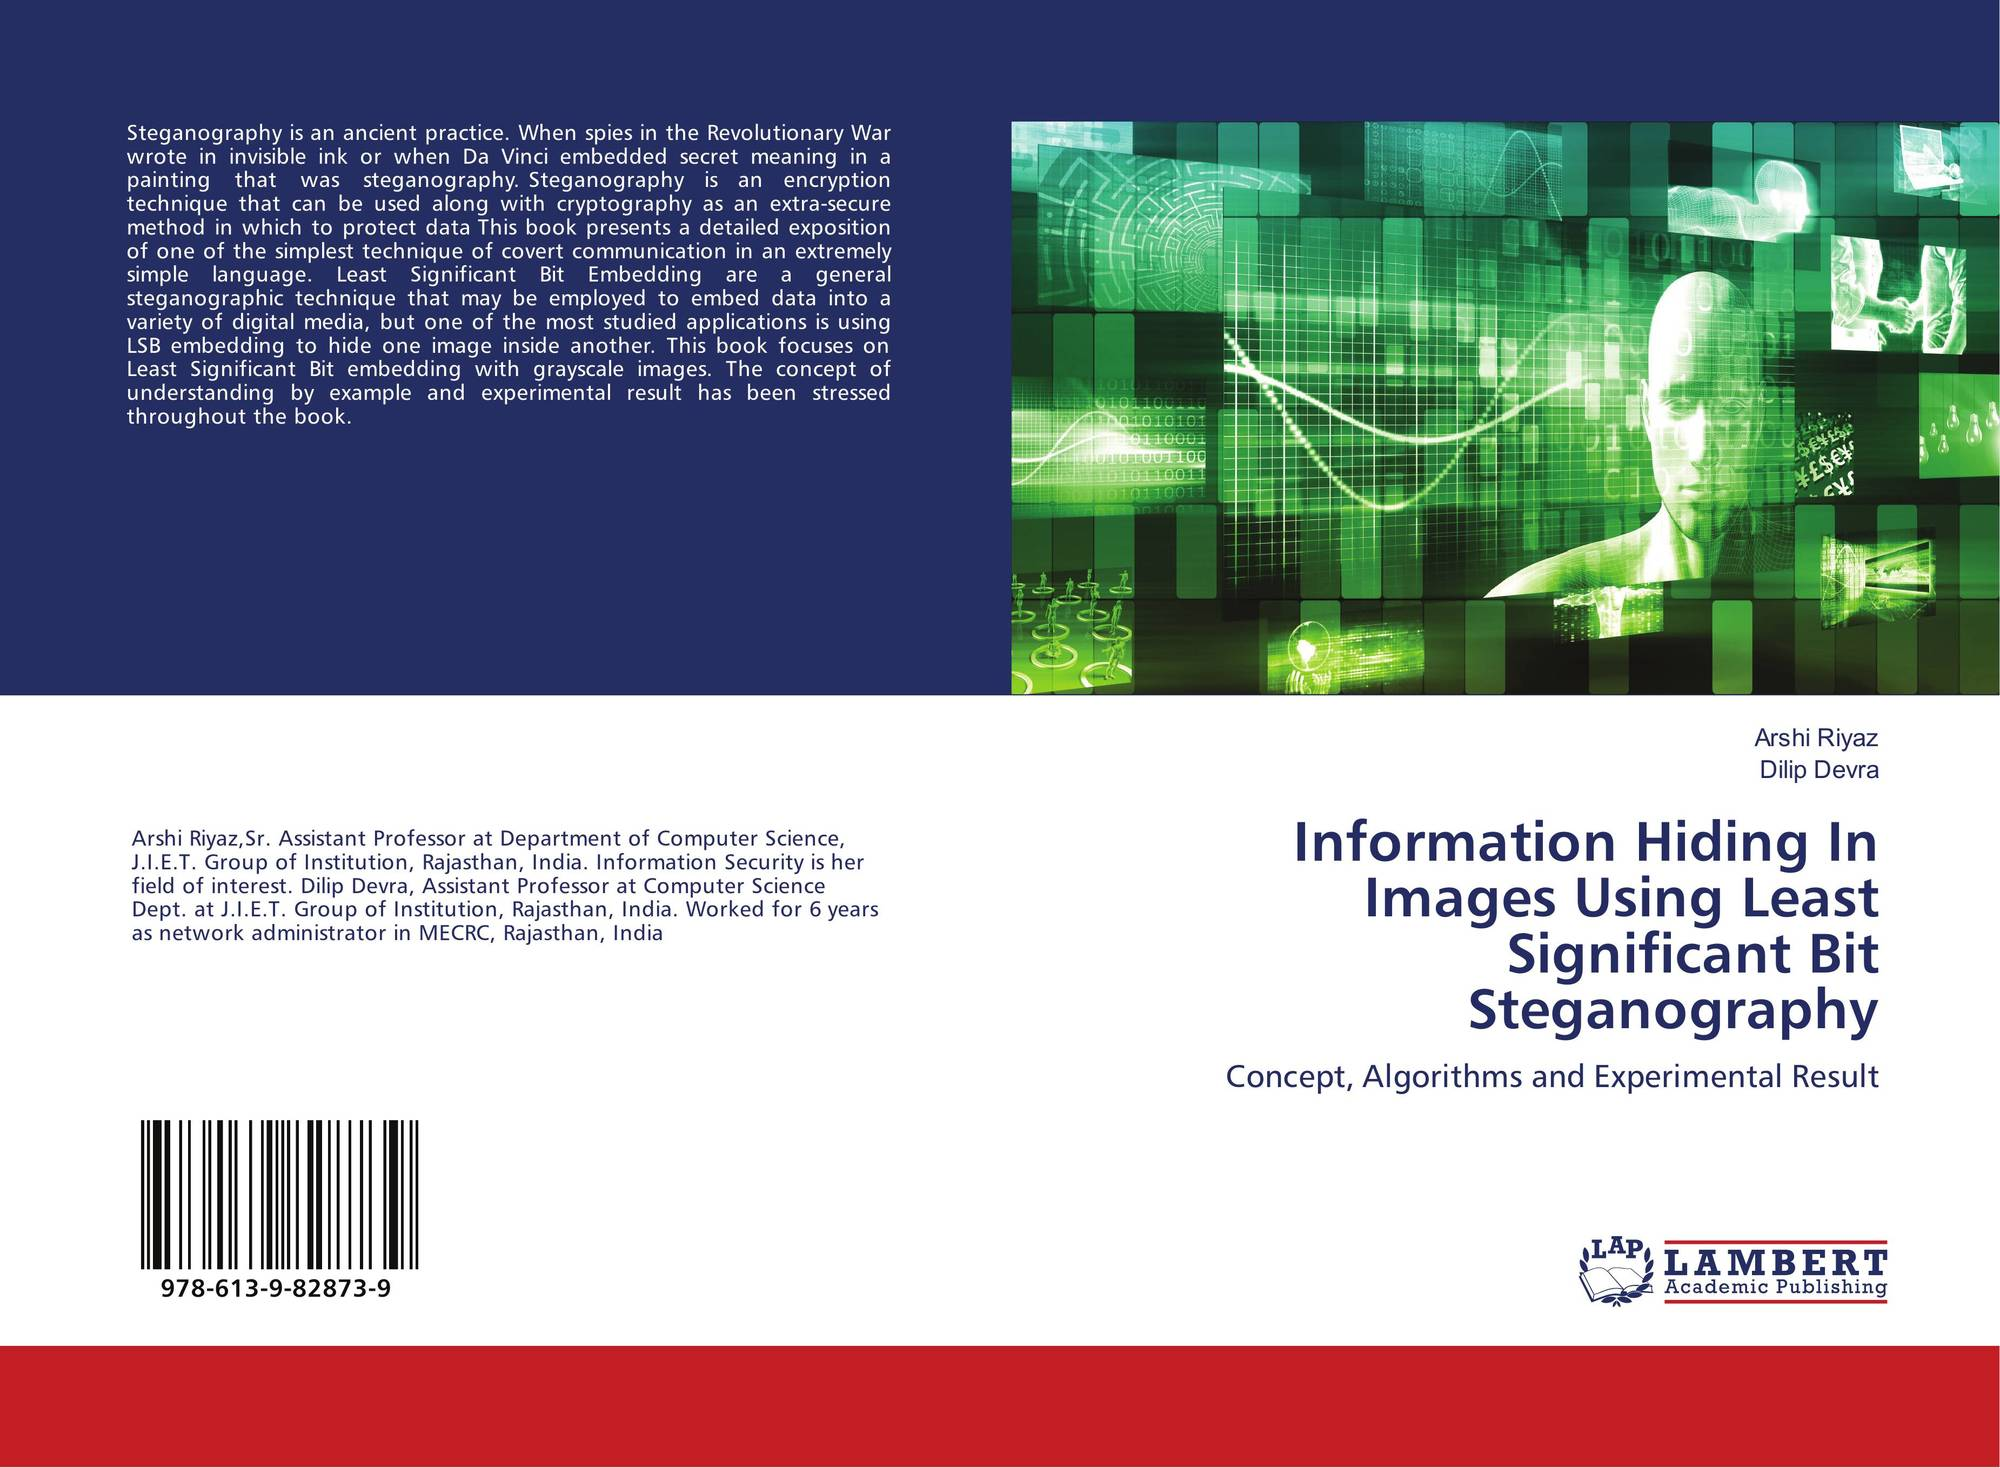 image based steganography using lsb insertion technique computer science essay Steganography and steganalysis are the prominent research fields in information hiding paradigm steganography is the science of invisible communication while steganalysis is the detection of steganography.